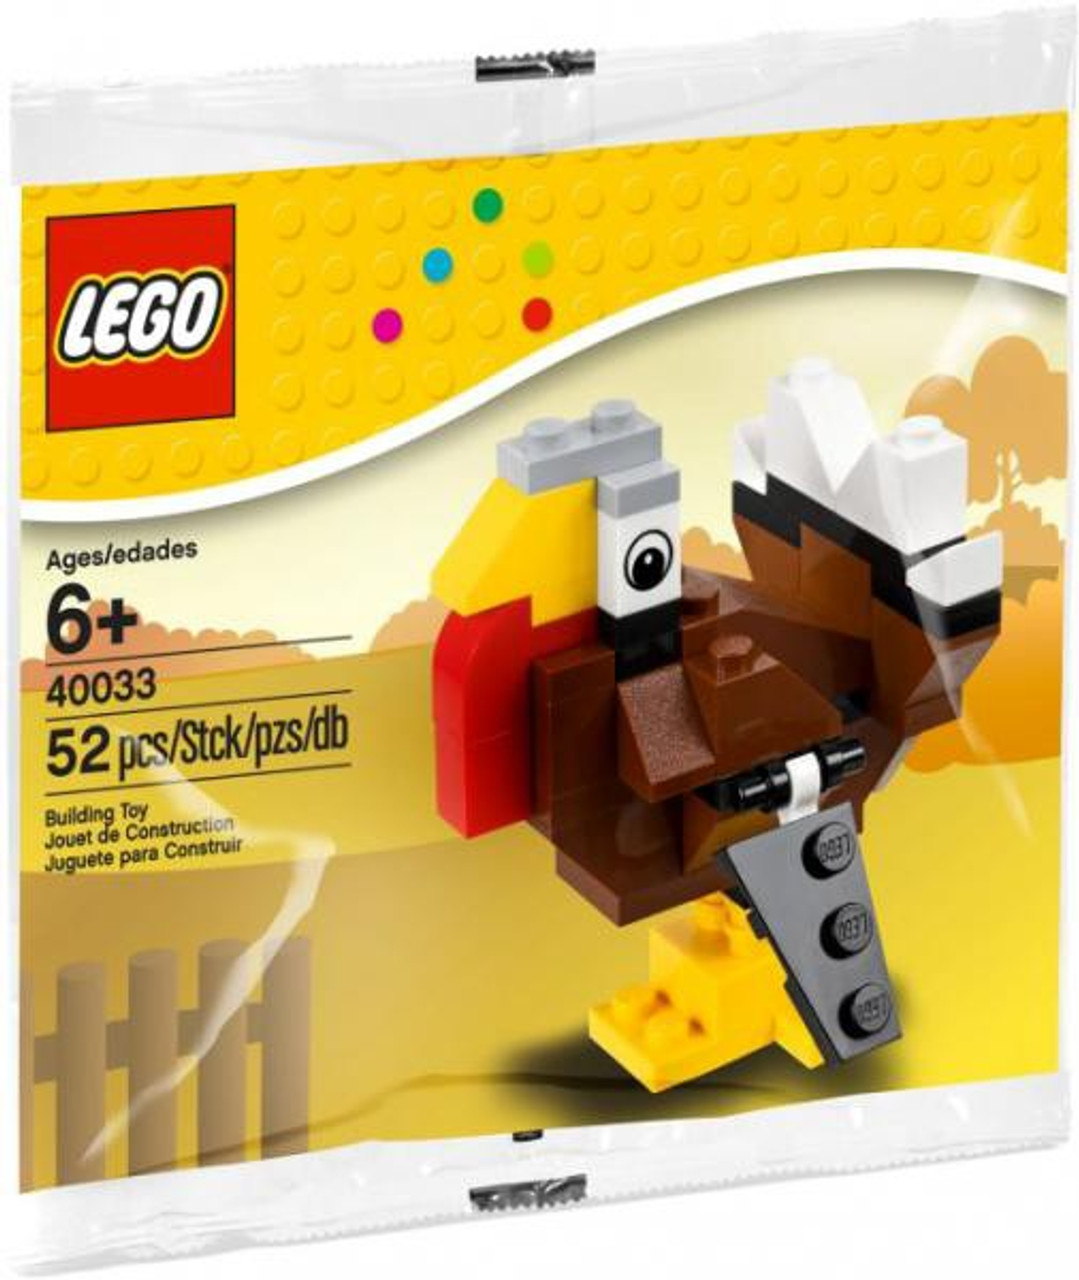 LEGO Turkey Mini Set #40033 [Bagged]